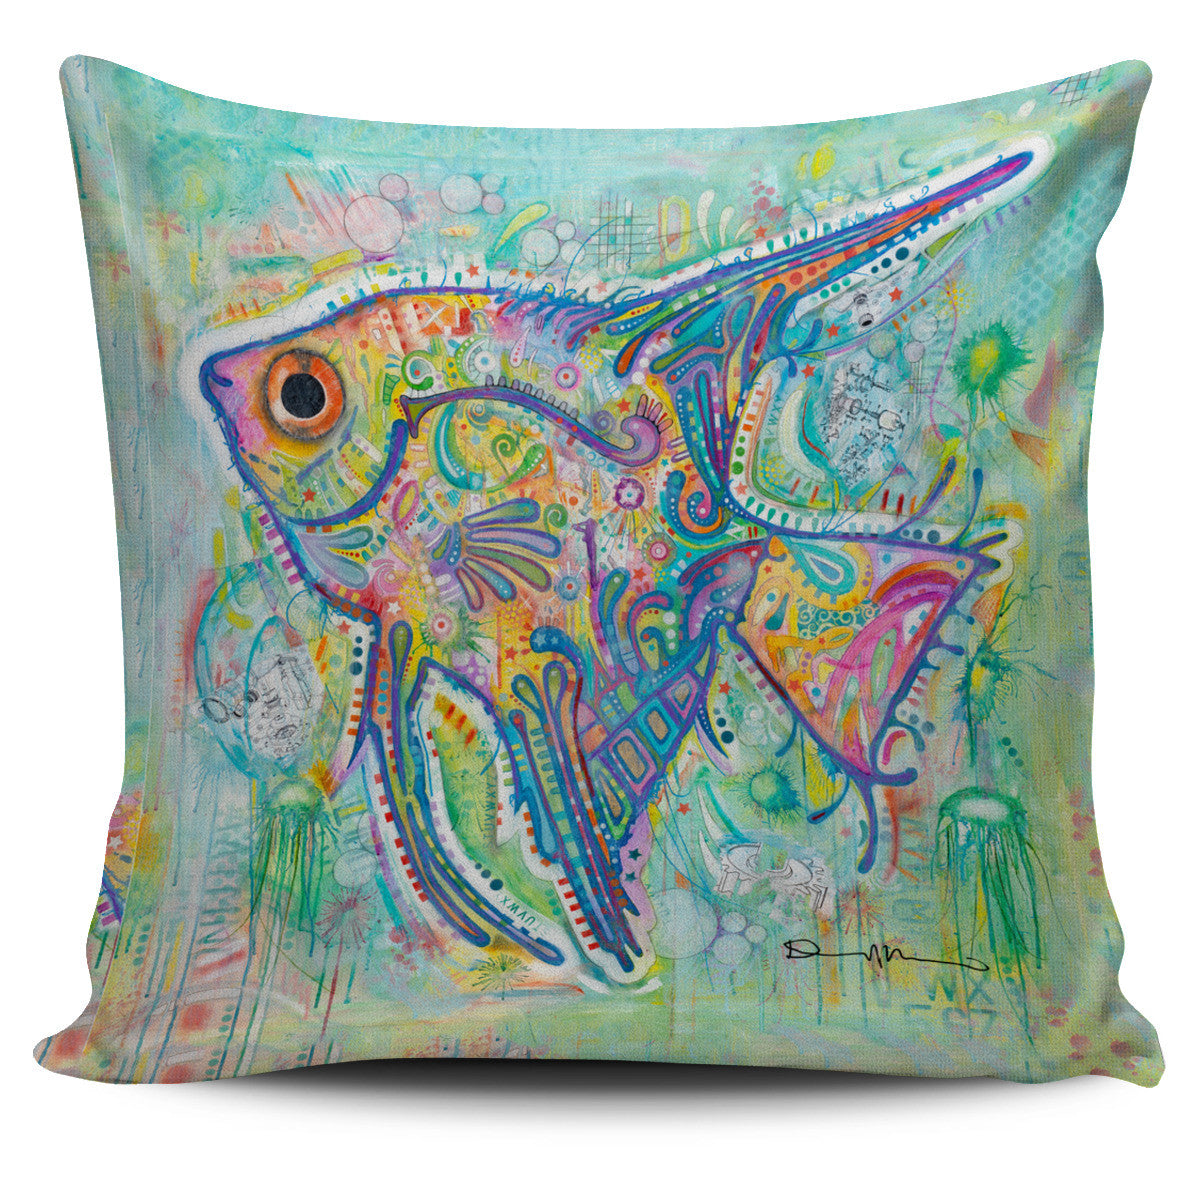 Oceana Series Pillow Covers Offer